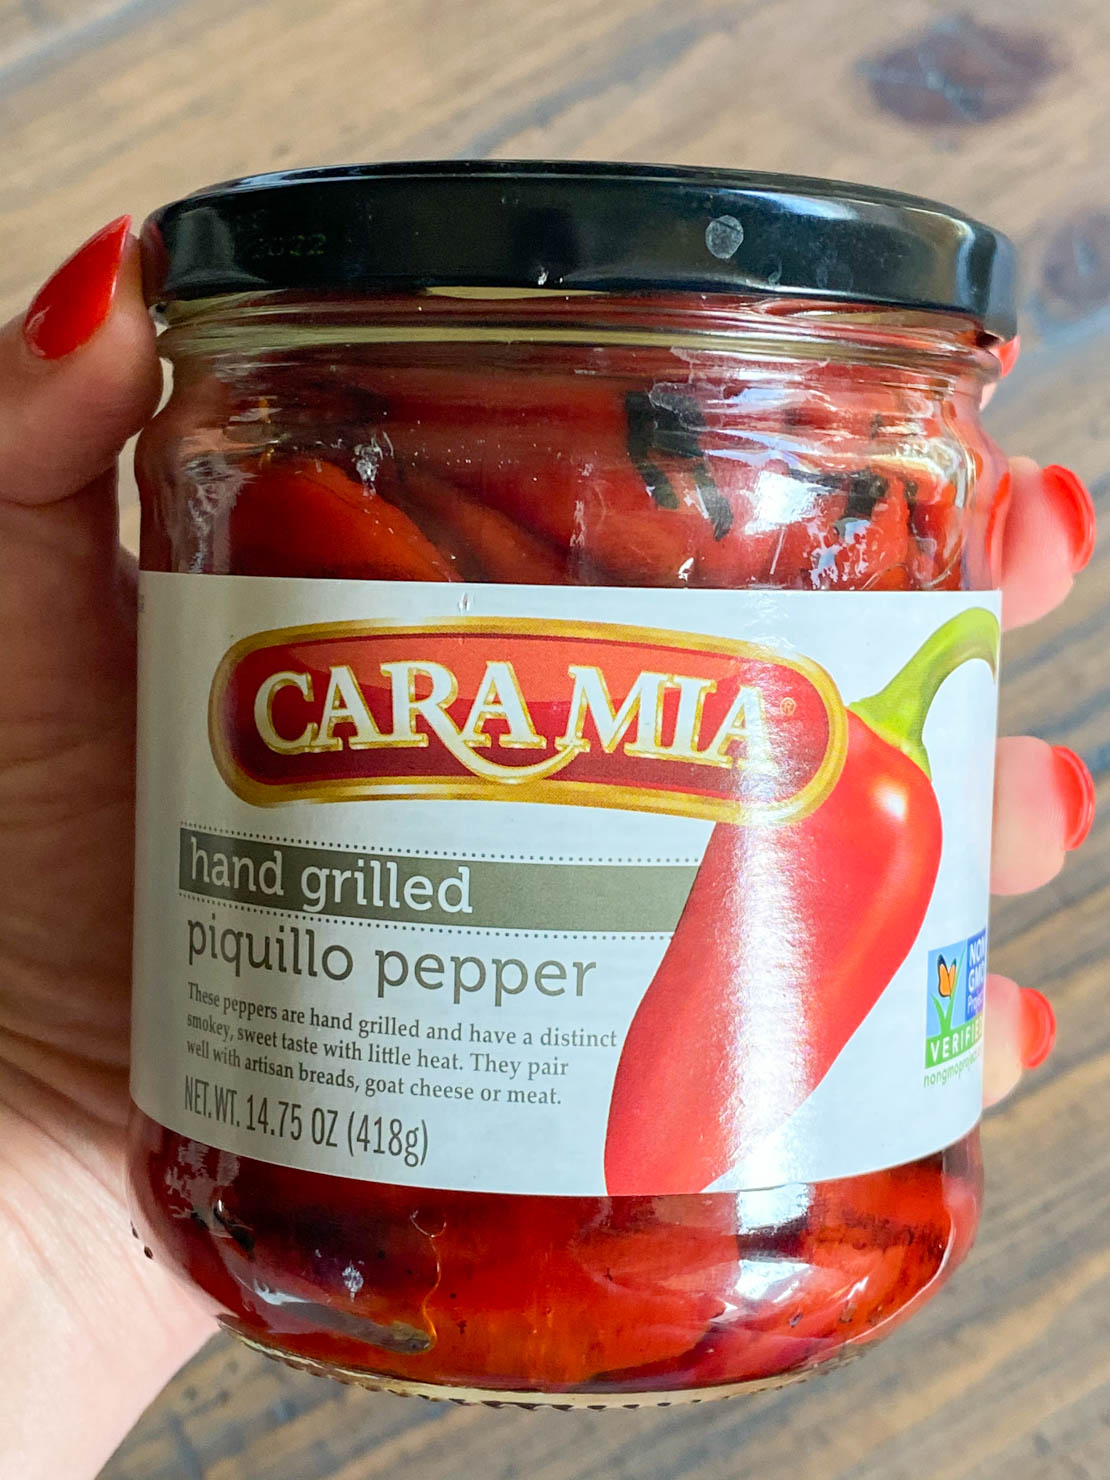 A jar of grilled piquillo peppers